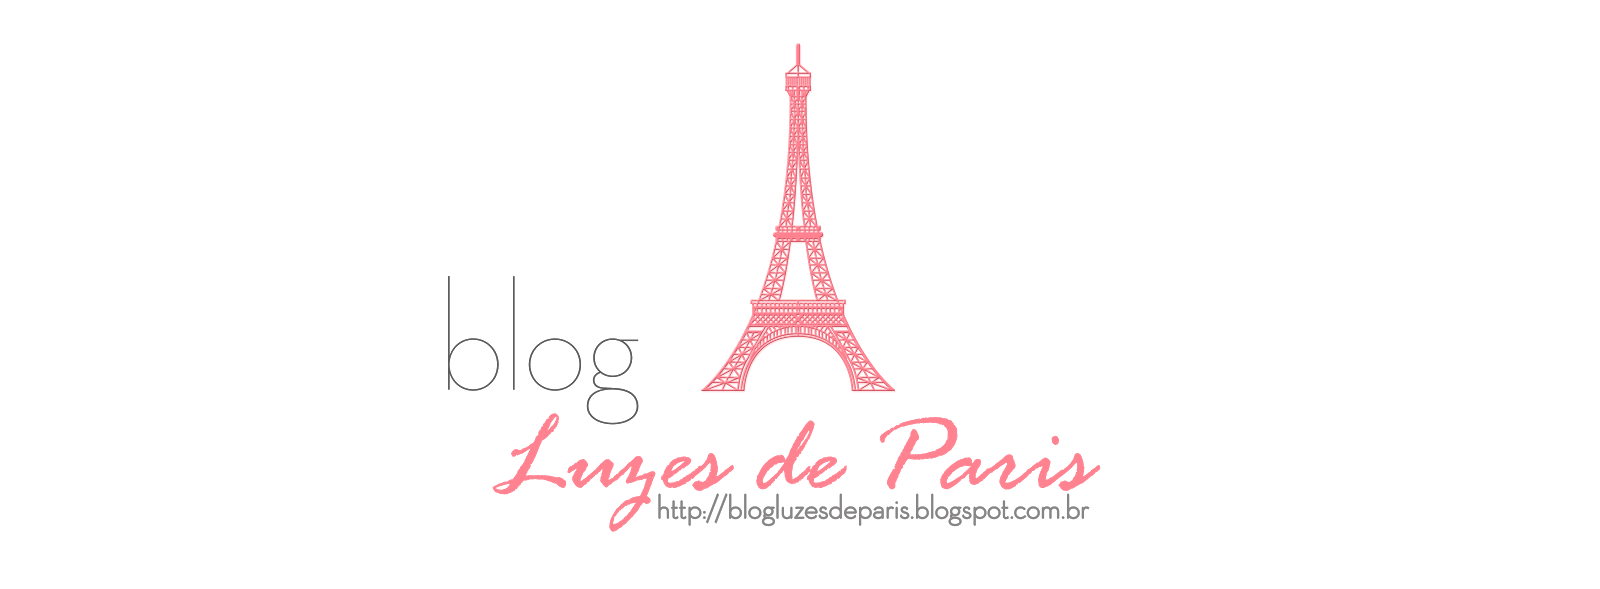 Blog Luzes de Paris